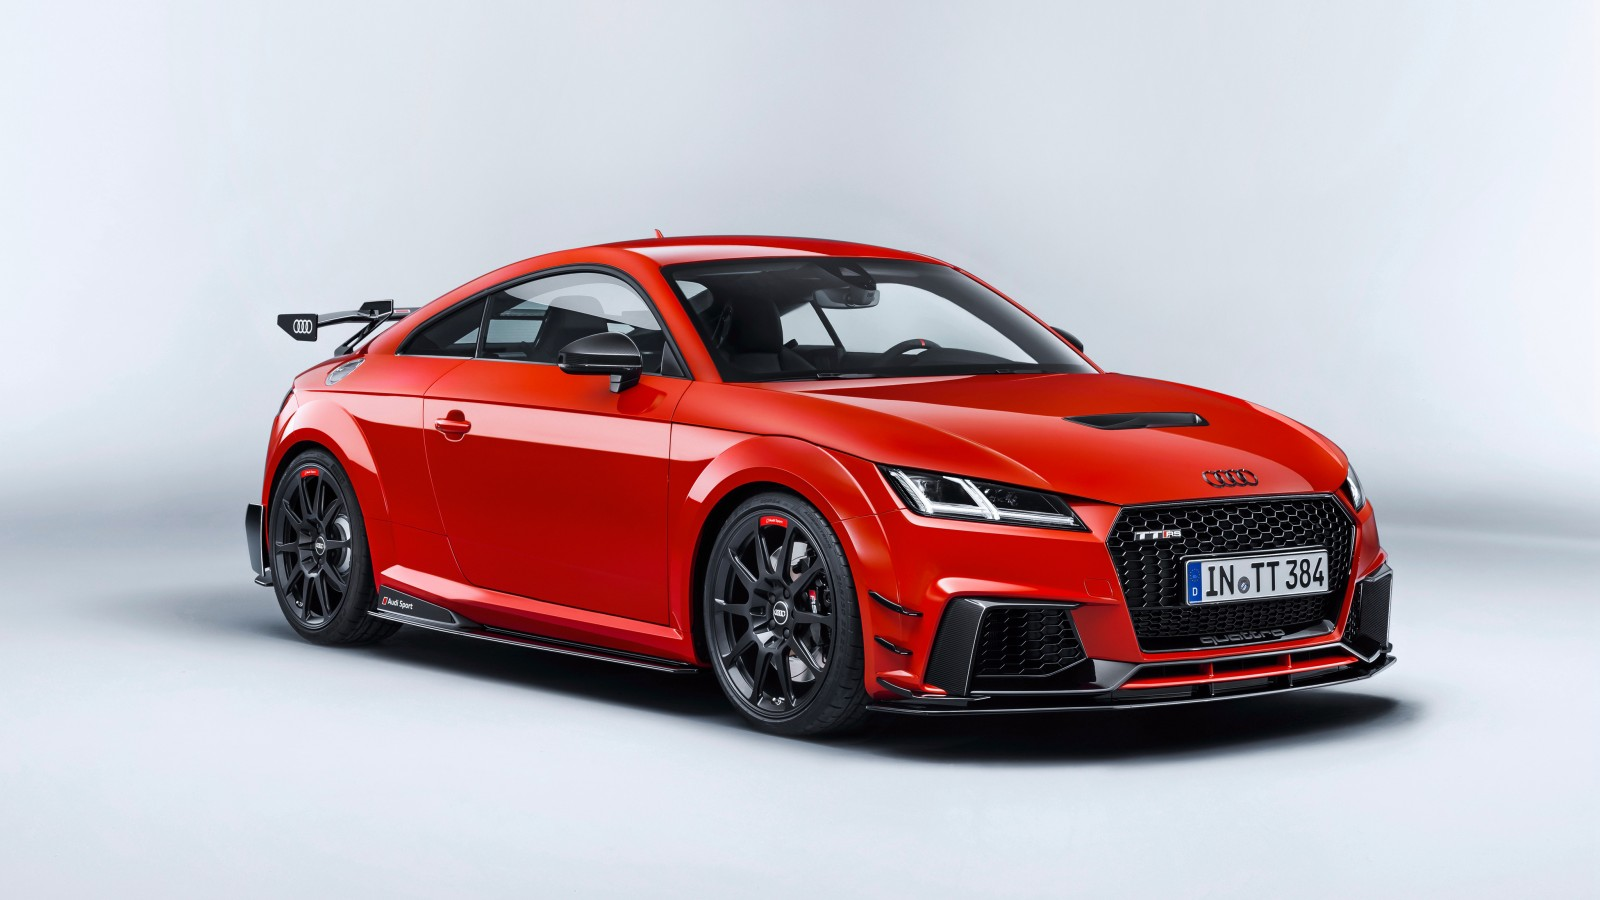 2018 audi tt rs coupe 2 wallpaper hd car wallpapers id. Black Bedroom Furniture Sets. Home Design Ideas